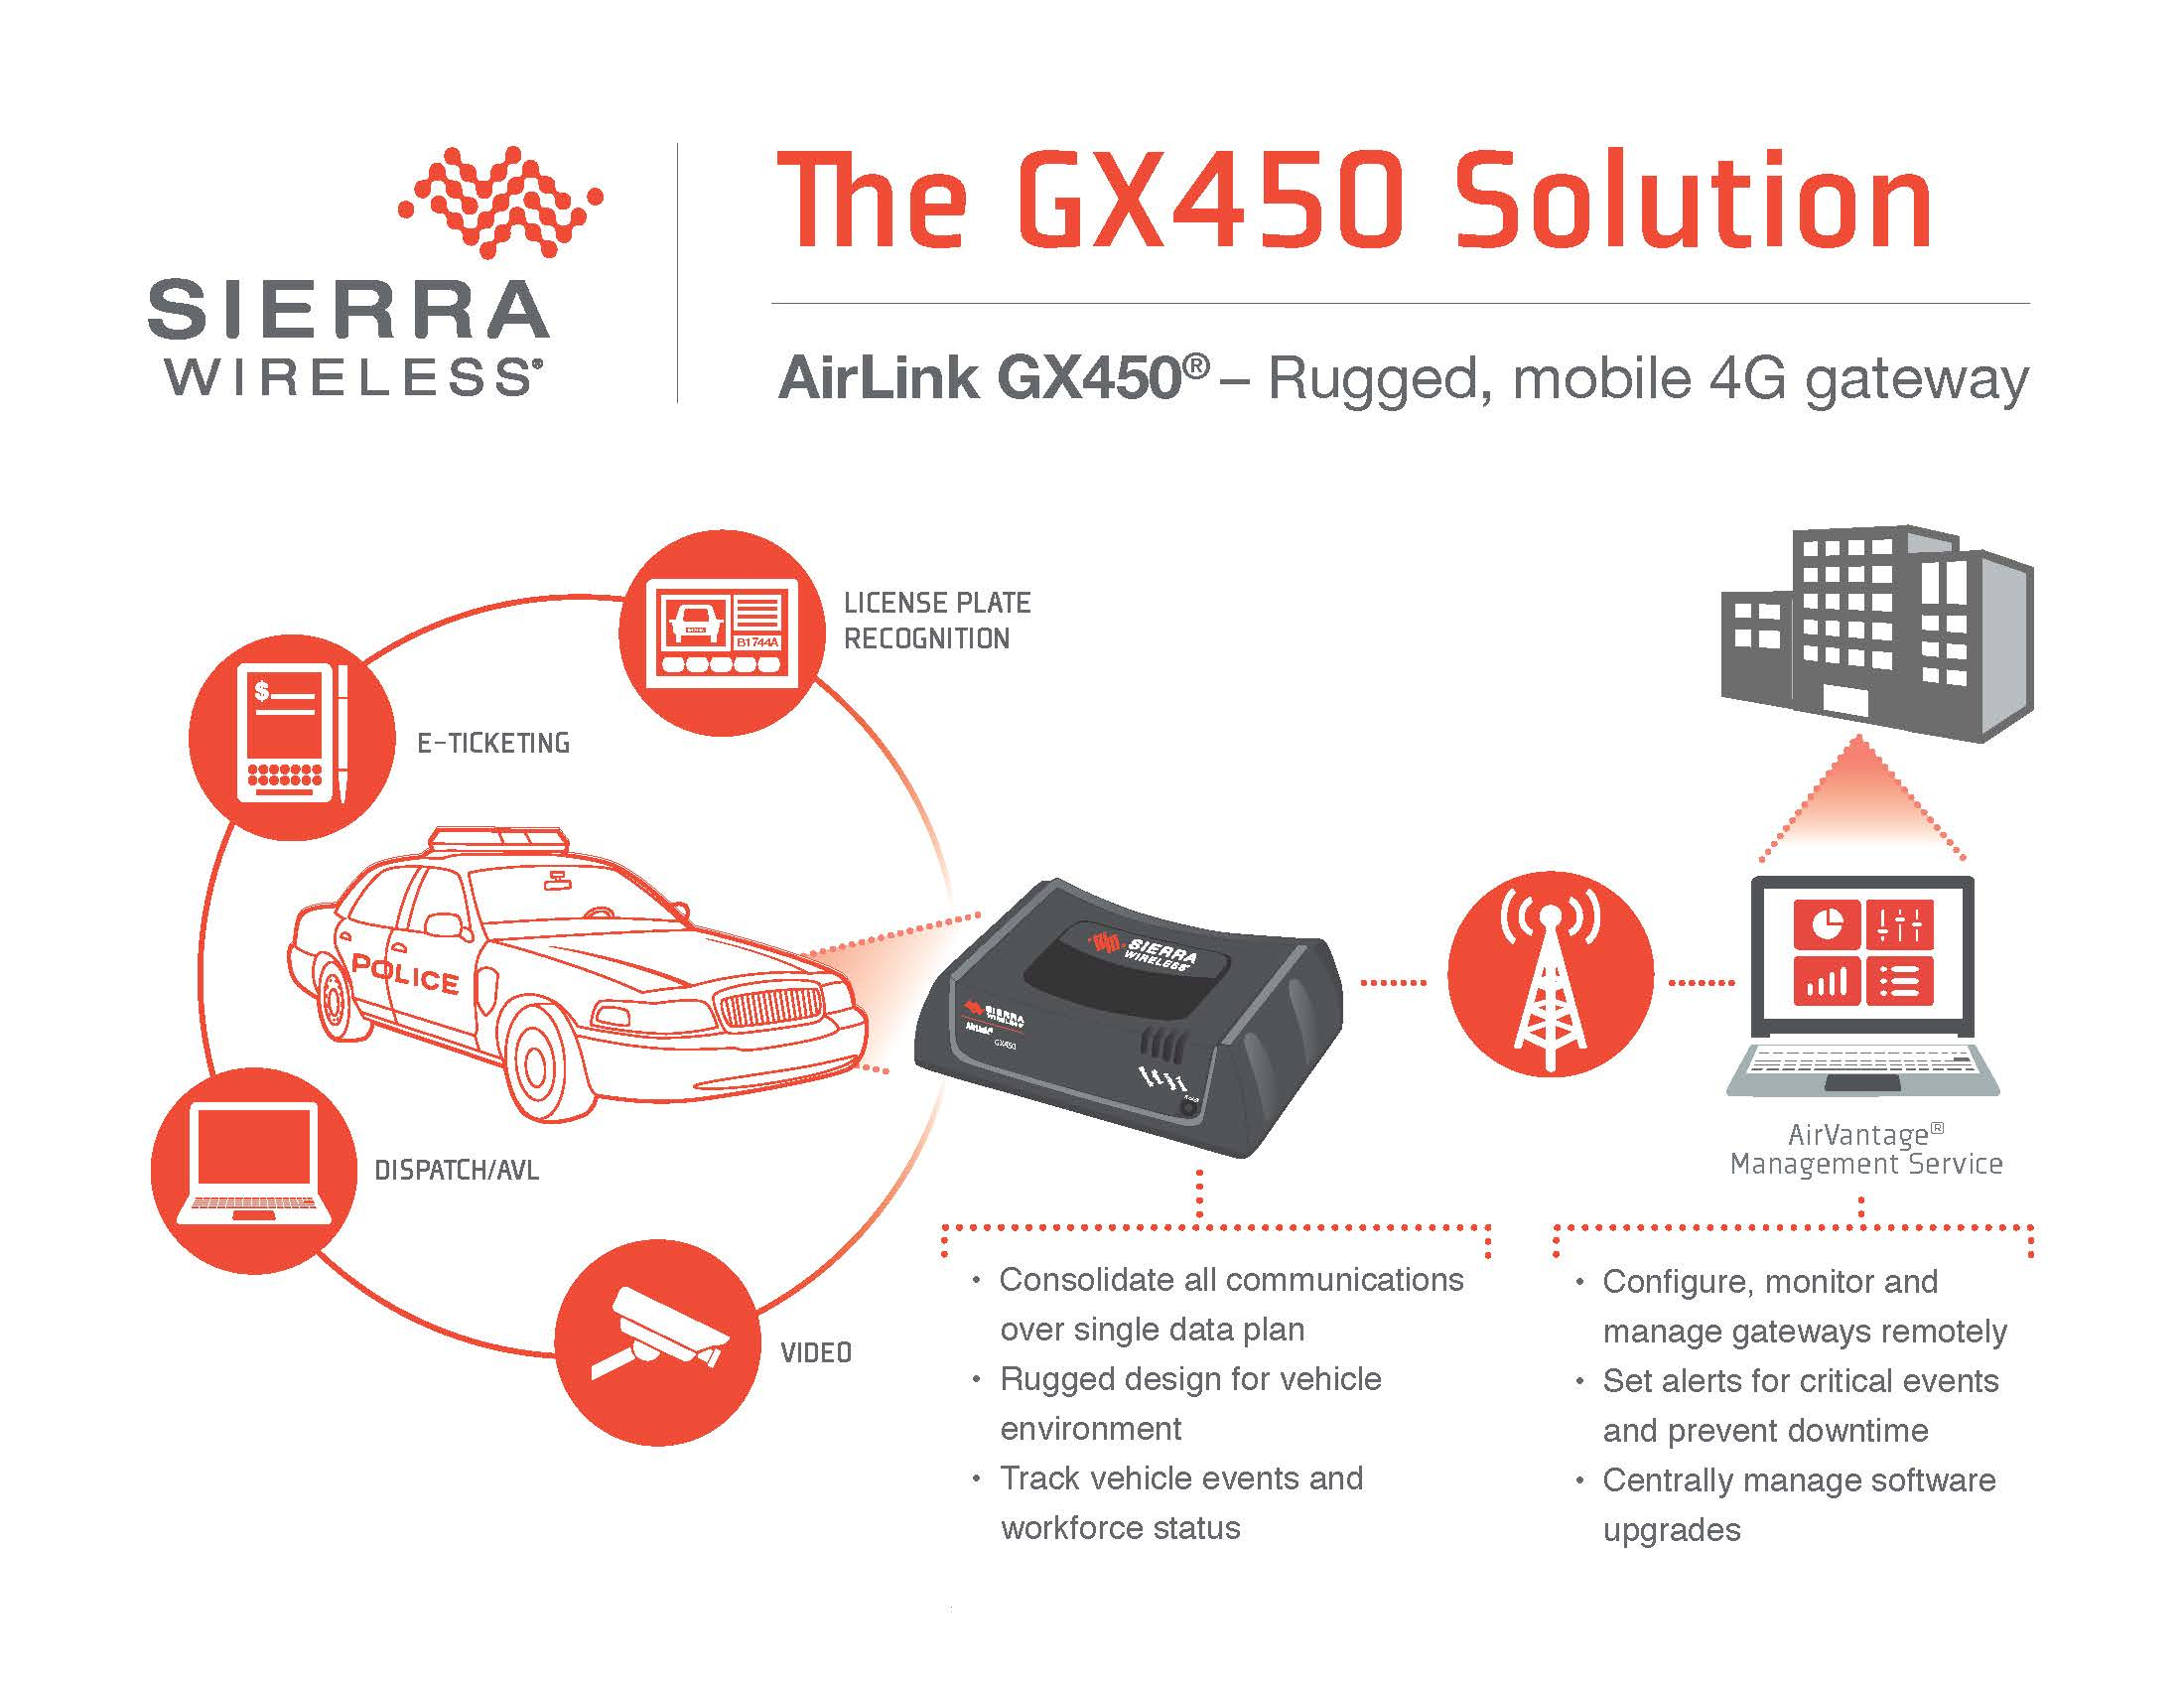 sierrawireless-airlink-gx450-easel-11x8-5.jpg